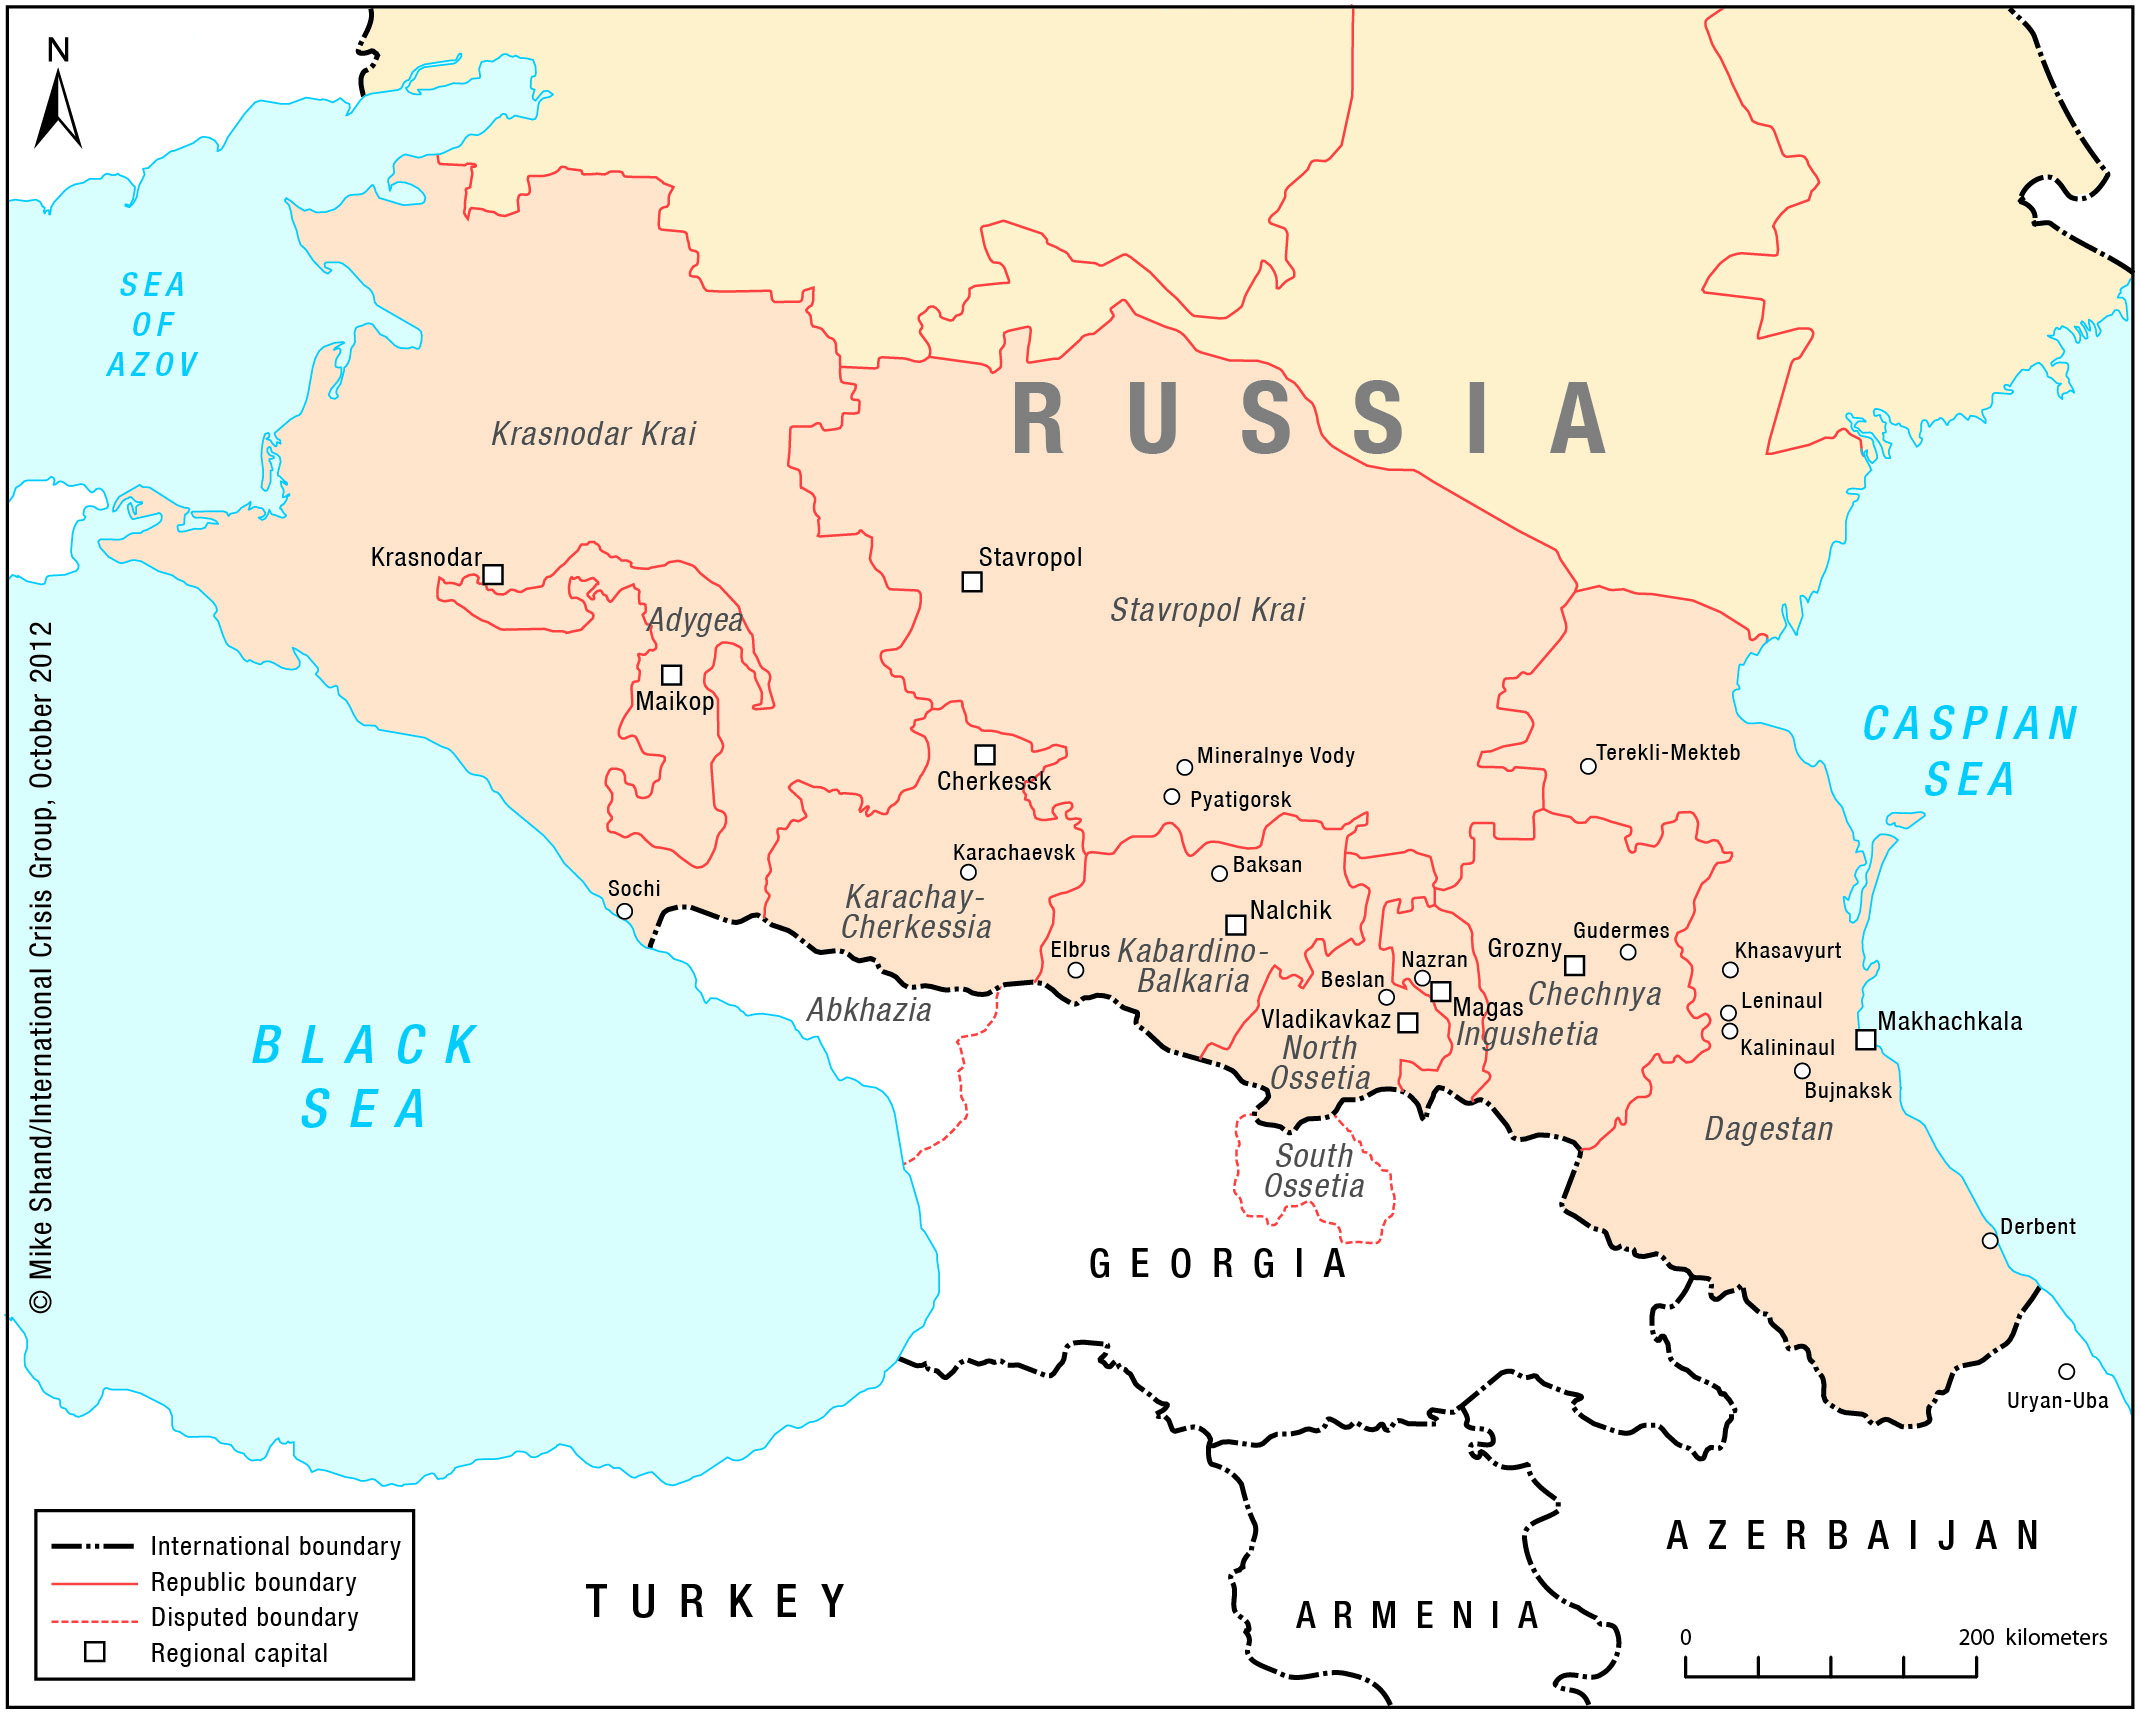 North Caucasus map V2 Eurasian Geopolitics